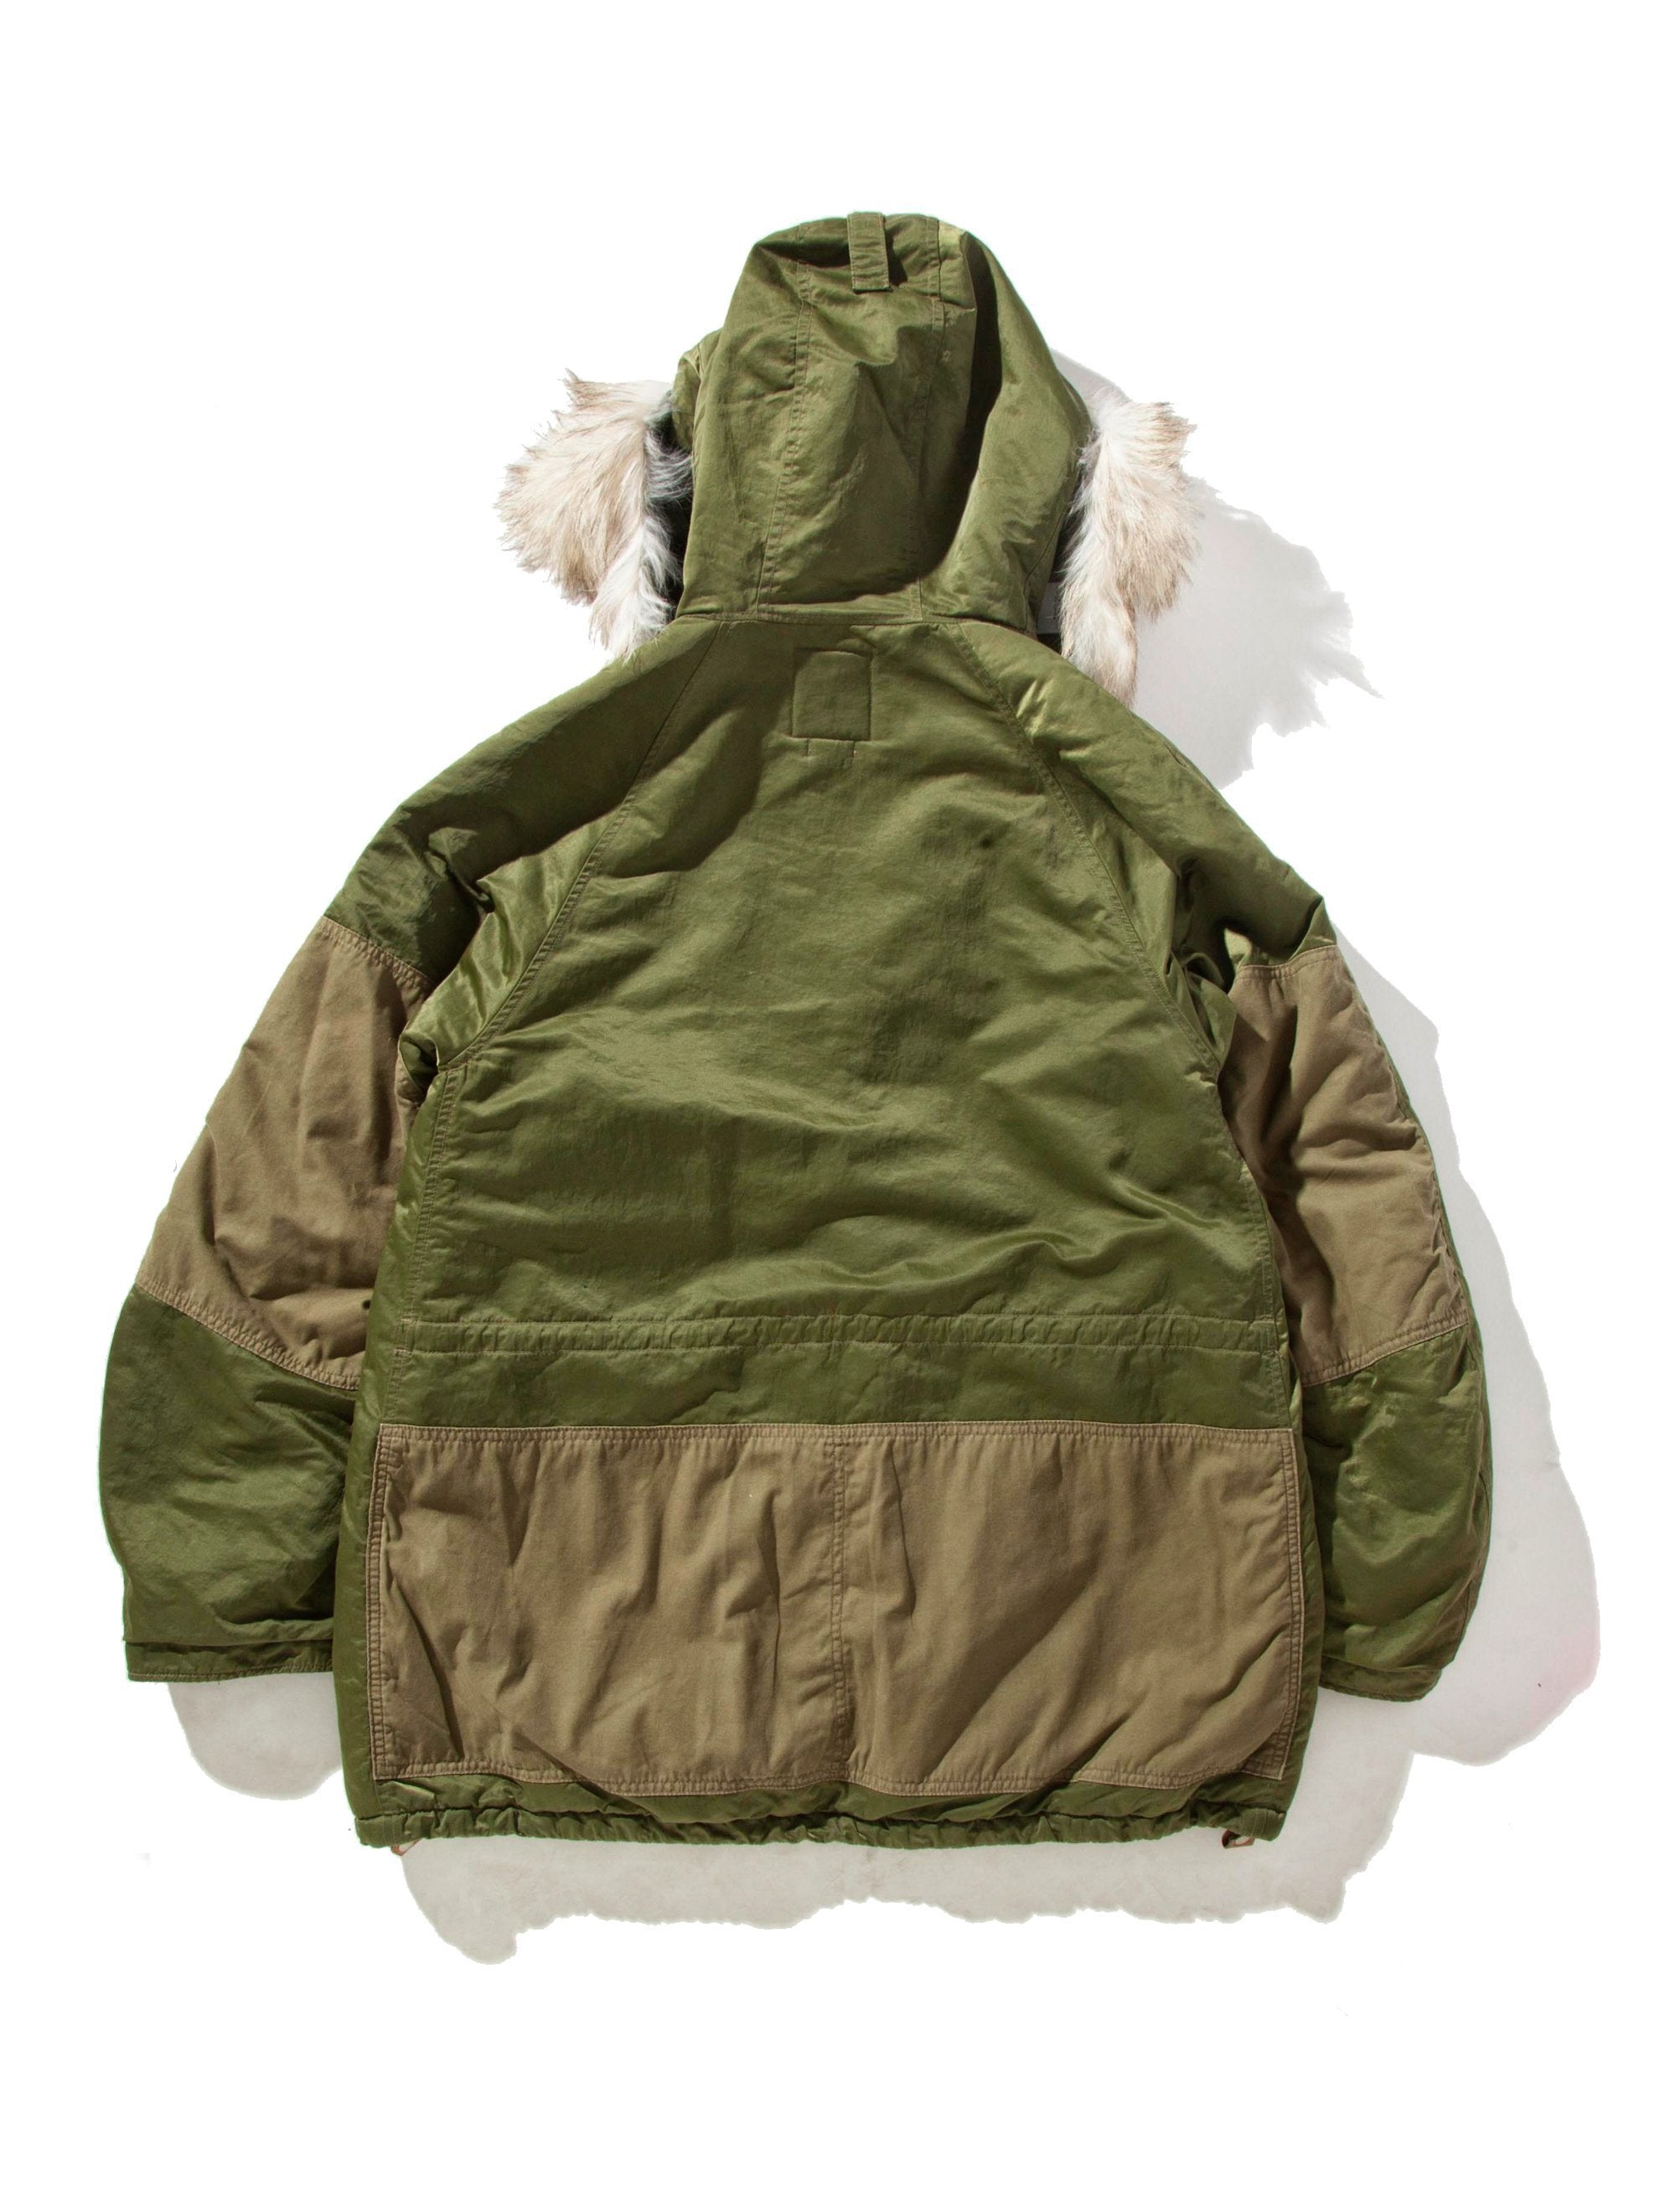 Green Valdez Coat (Wool Pile) 7